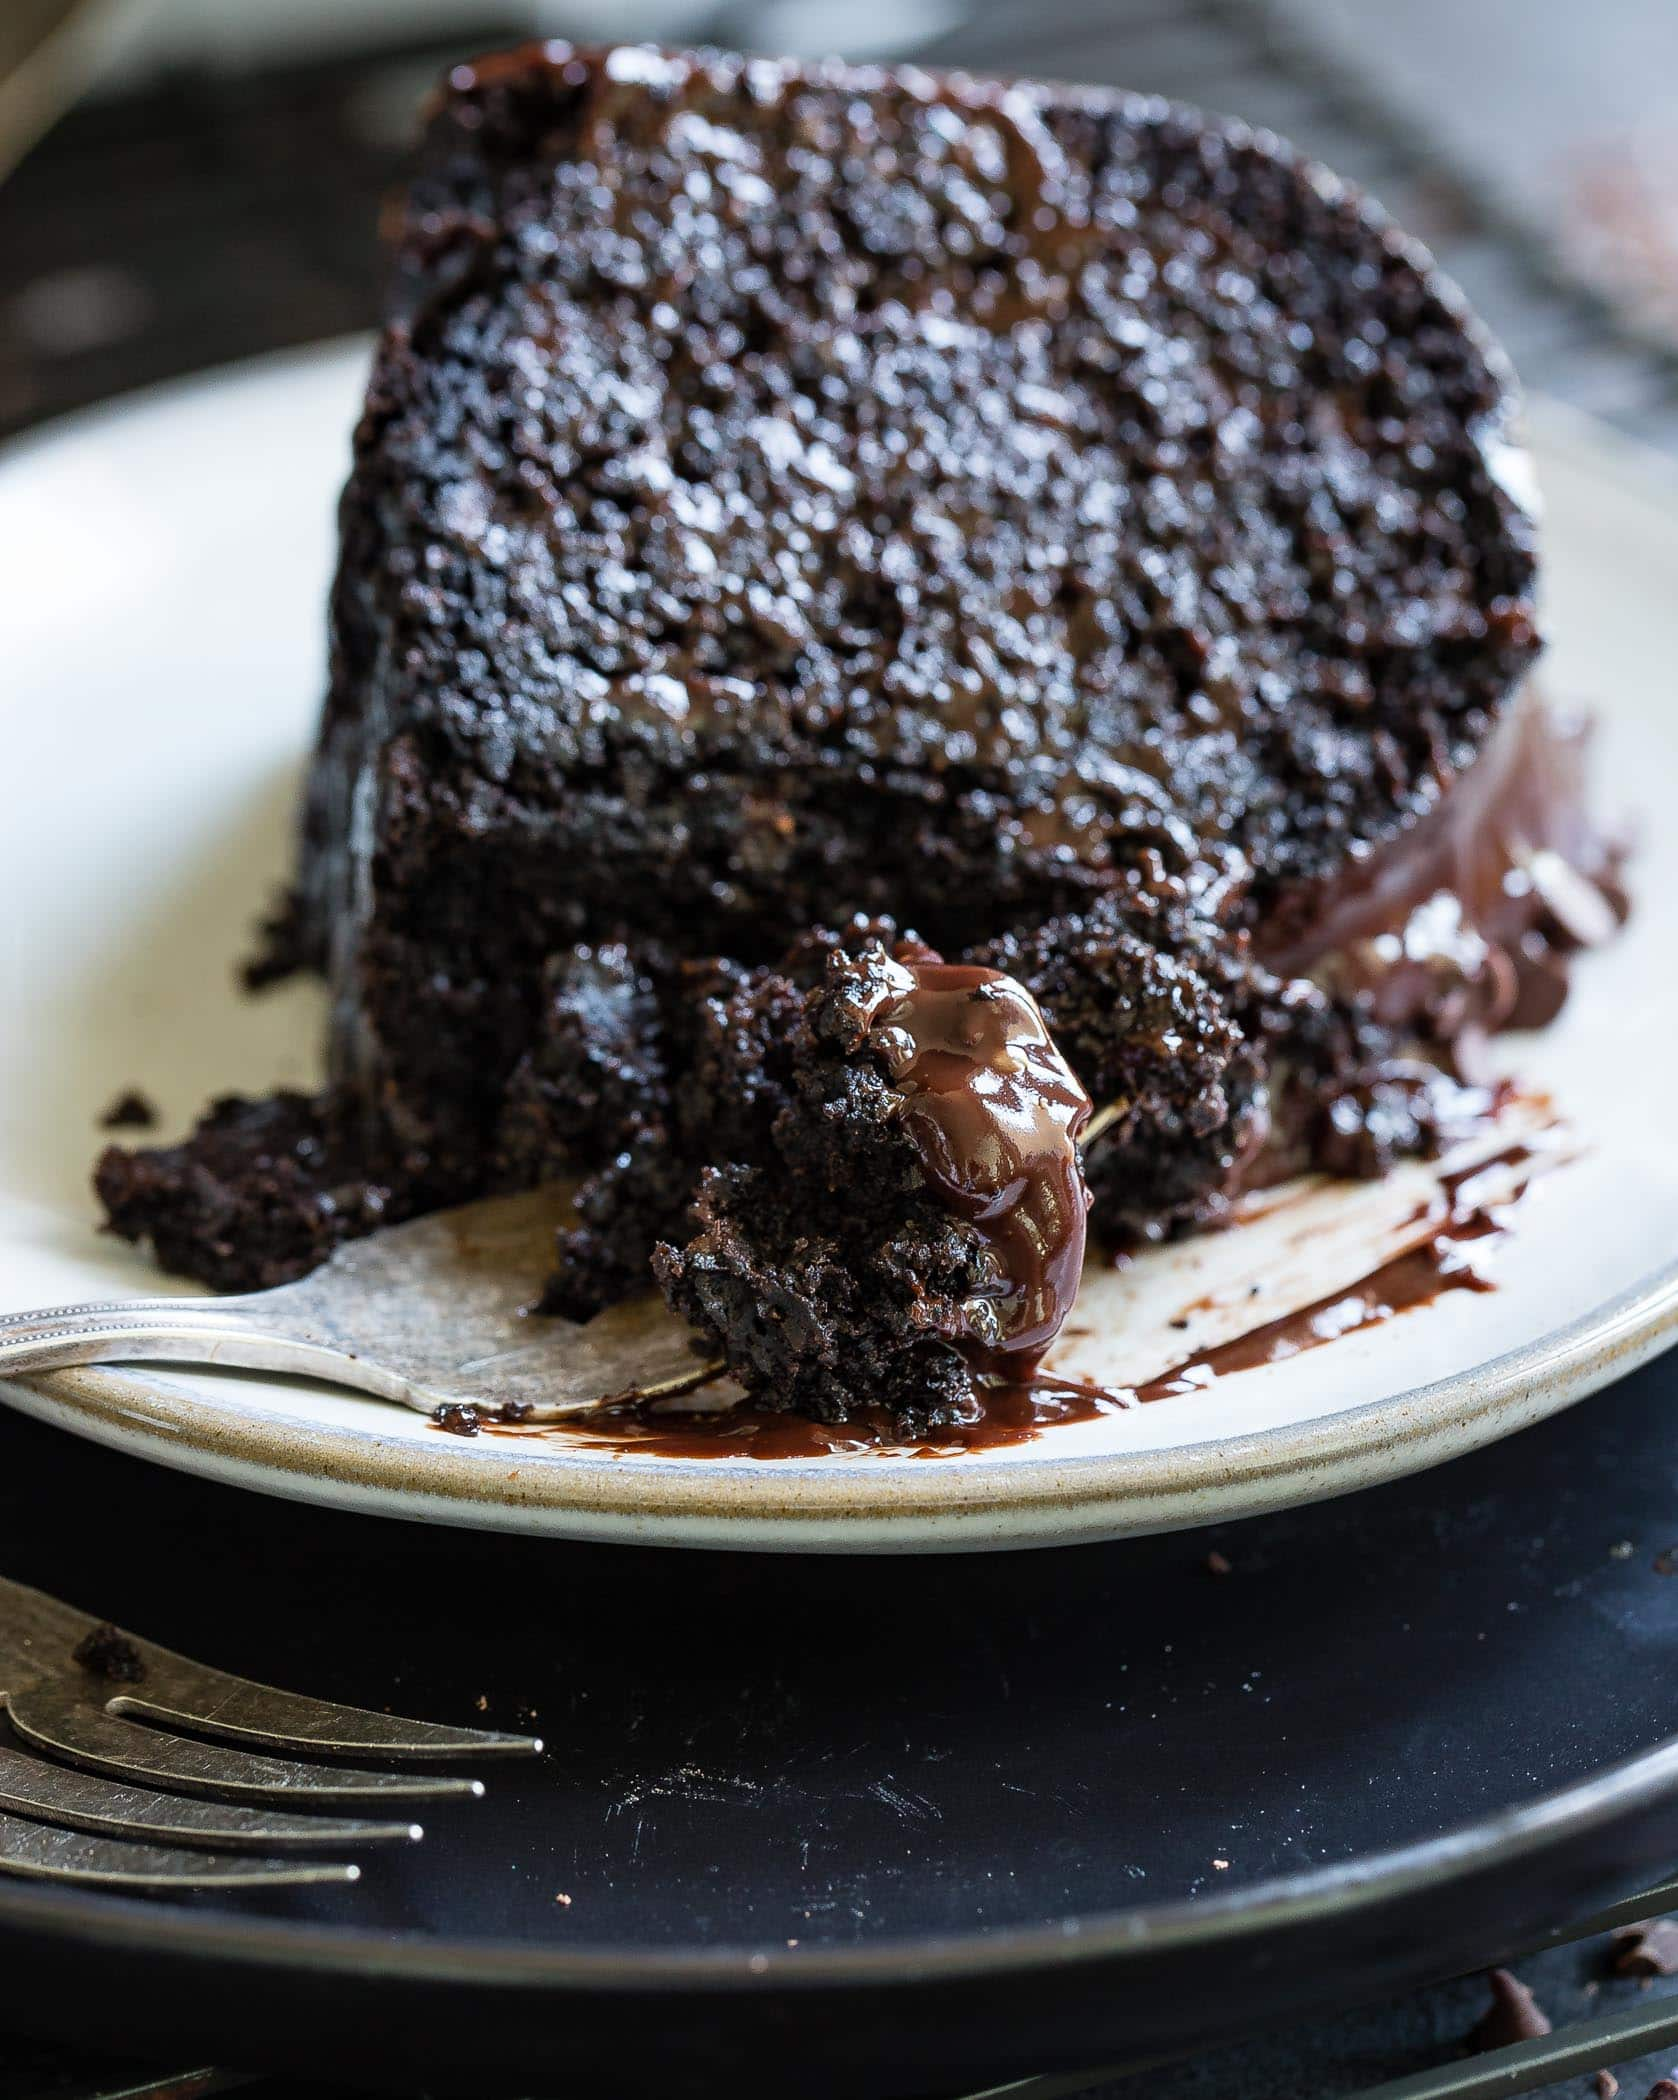 A slice of zucchini chocolate bundt cake on a white dessert plate. The cake is dark, moist chocolate with a chocolate glaze. A fork is beside the plate.